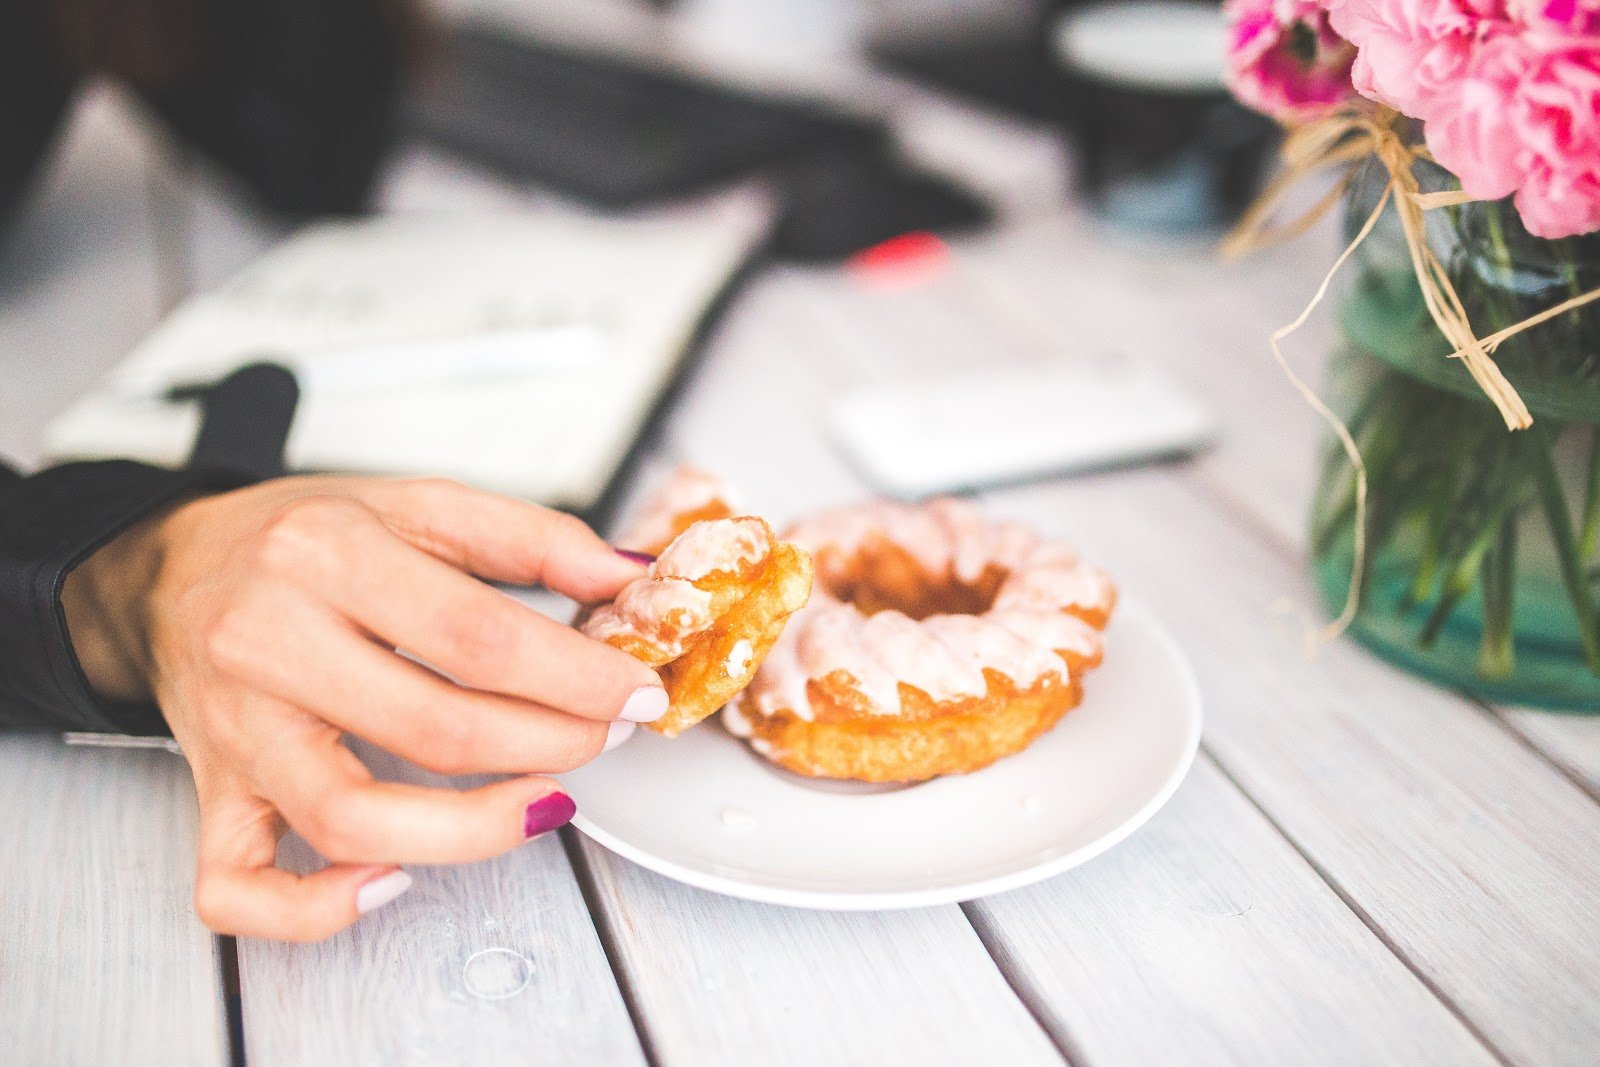 womans-hand-with-painted-nails-holding-frosted-donuts